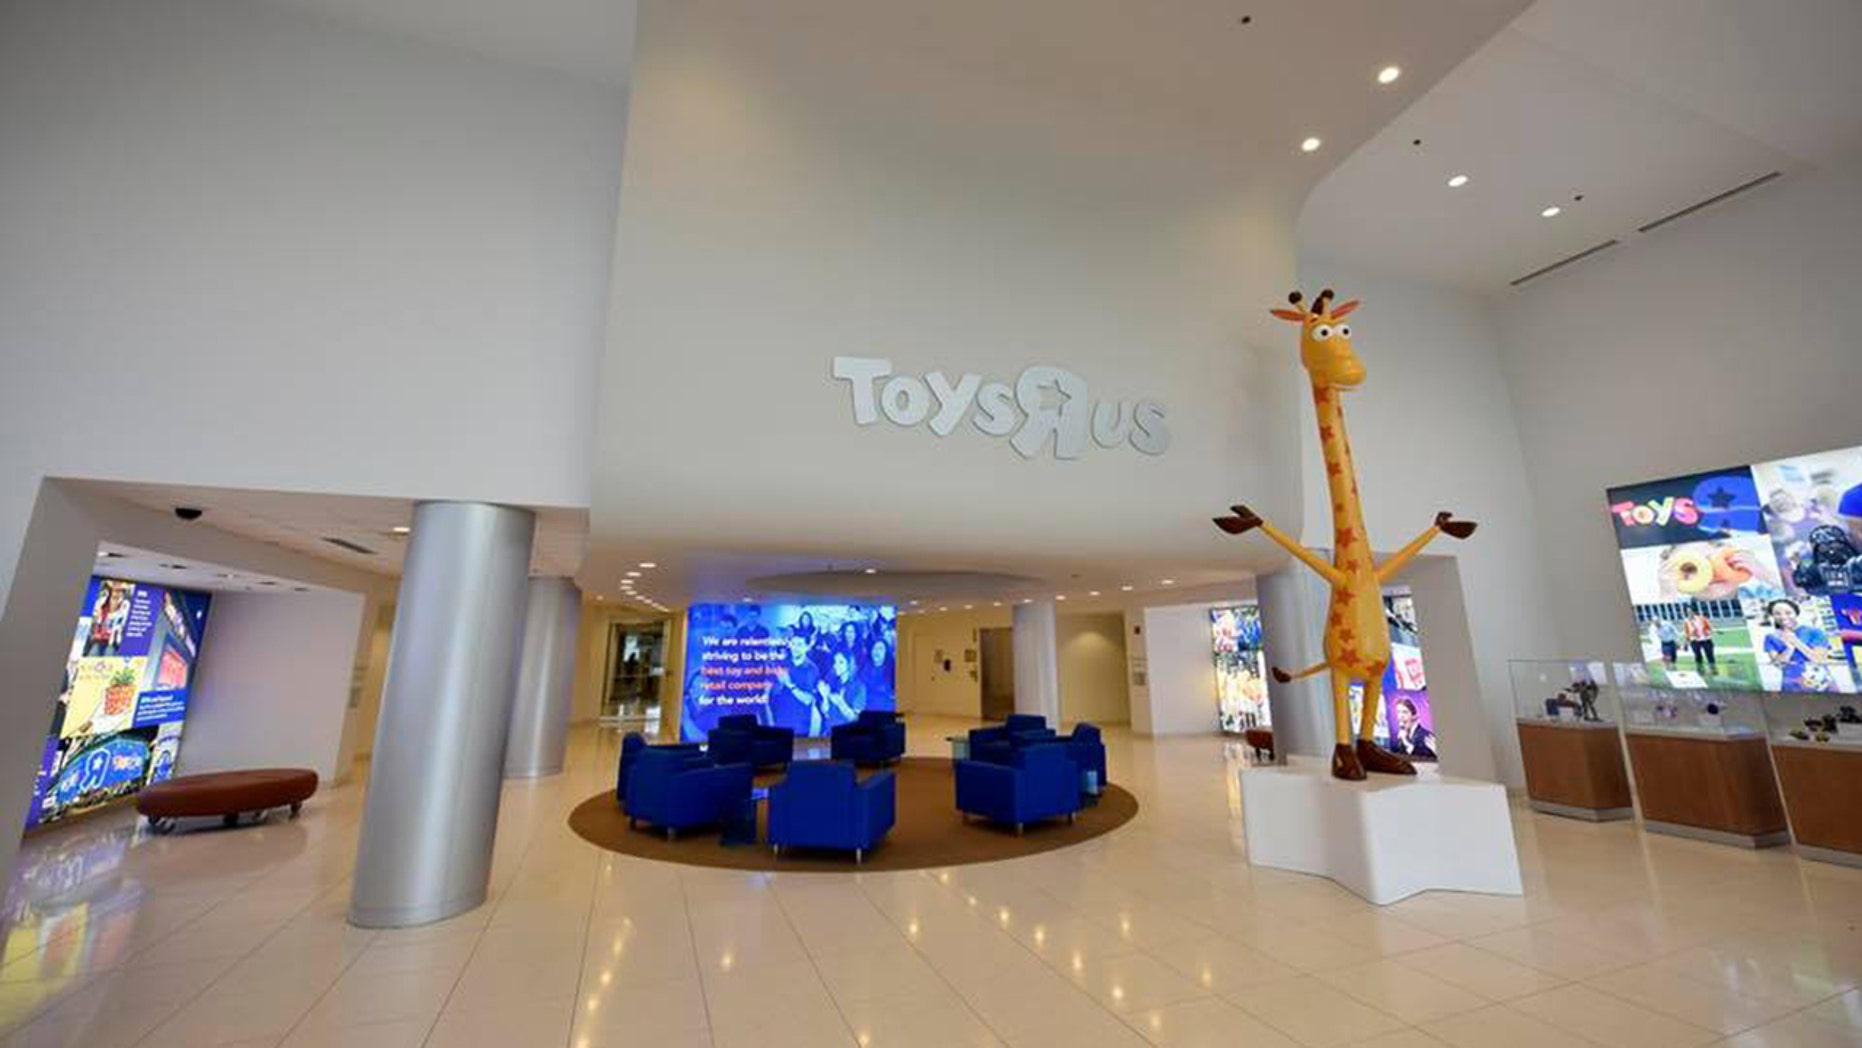 Statue Of Toys R Us Mascot Geoffrey The Giraffe Heading To